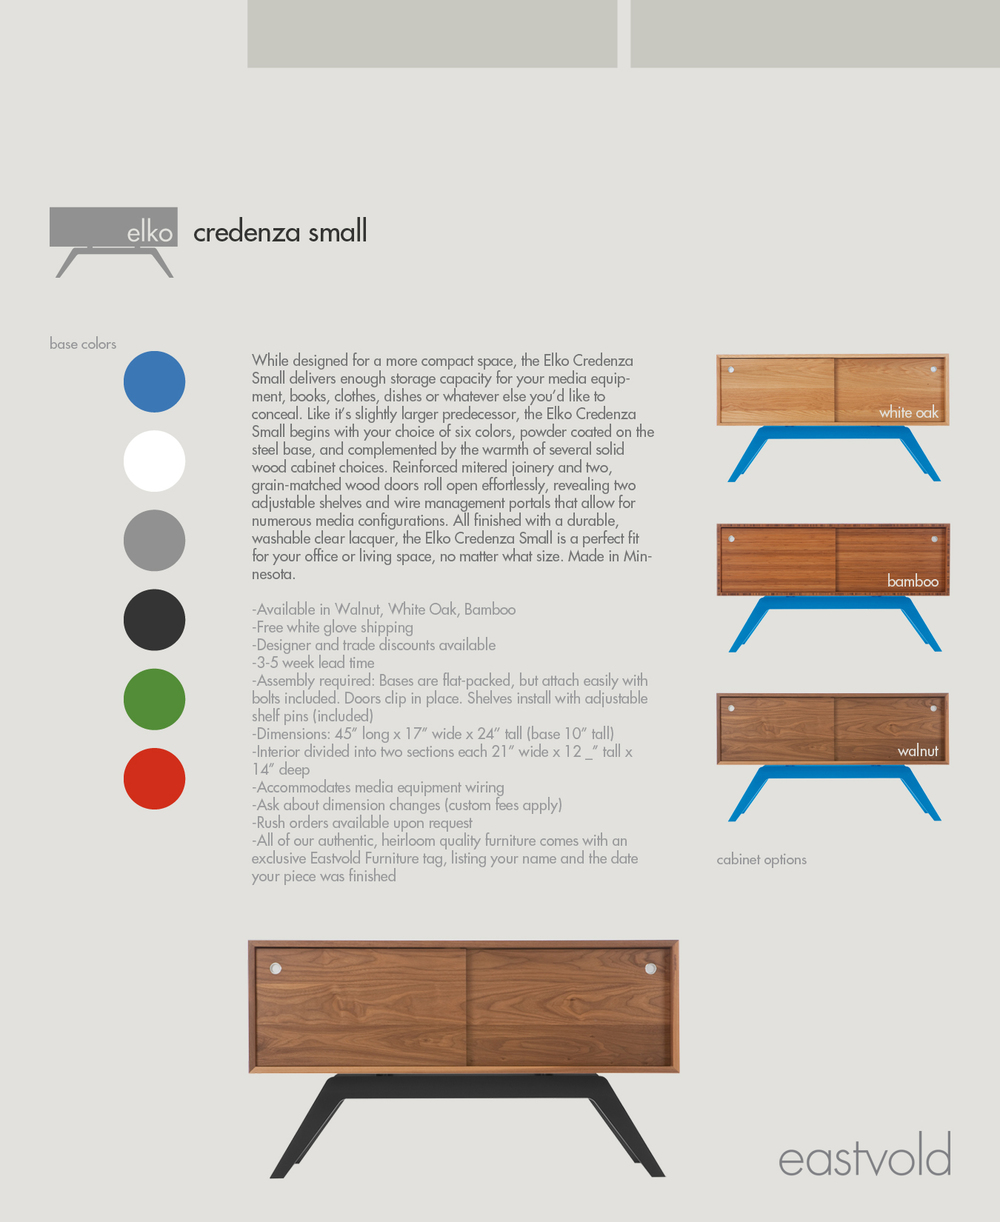 ELKO_CREDENZA_SMALL_SELL_SHEET_BACK copy.jpg